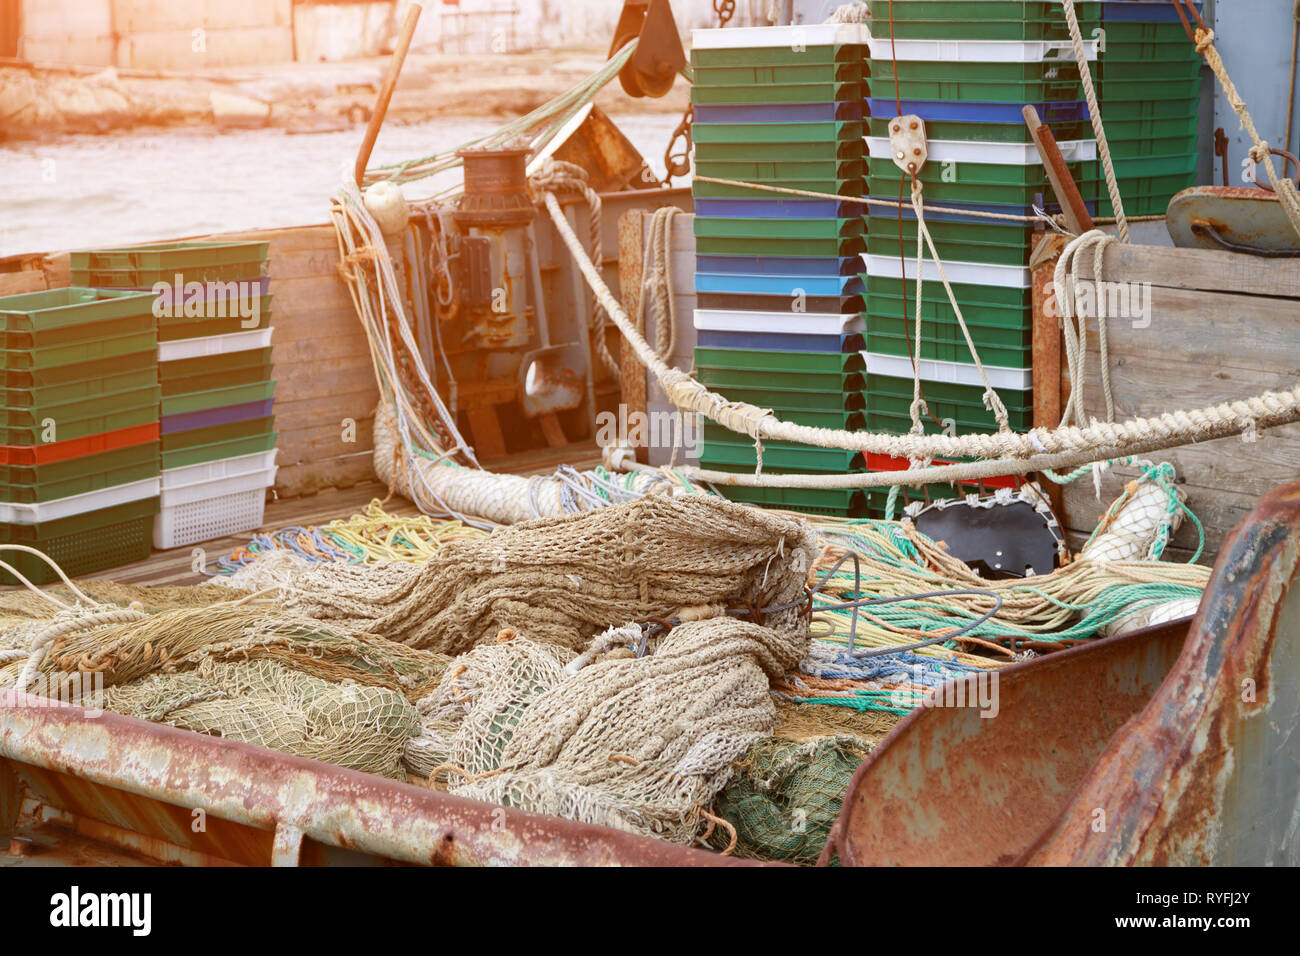 Trawl Boat Stock Photos & Trawl Boat Stock Images - Alamy